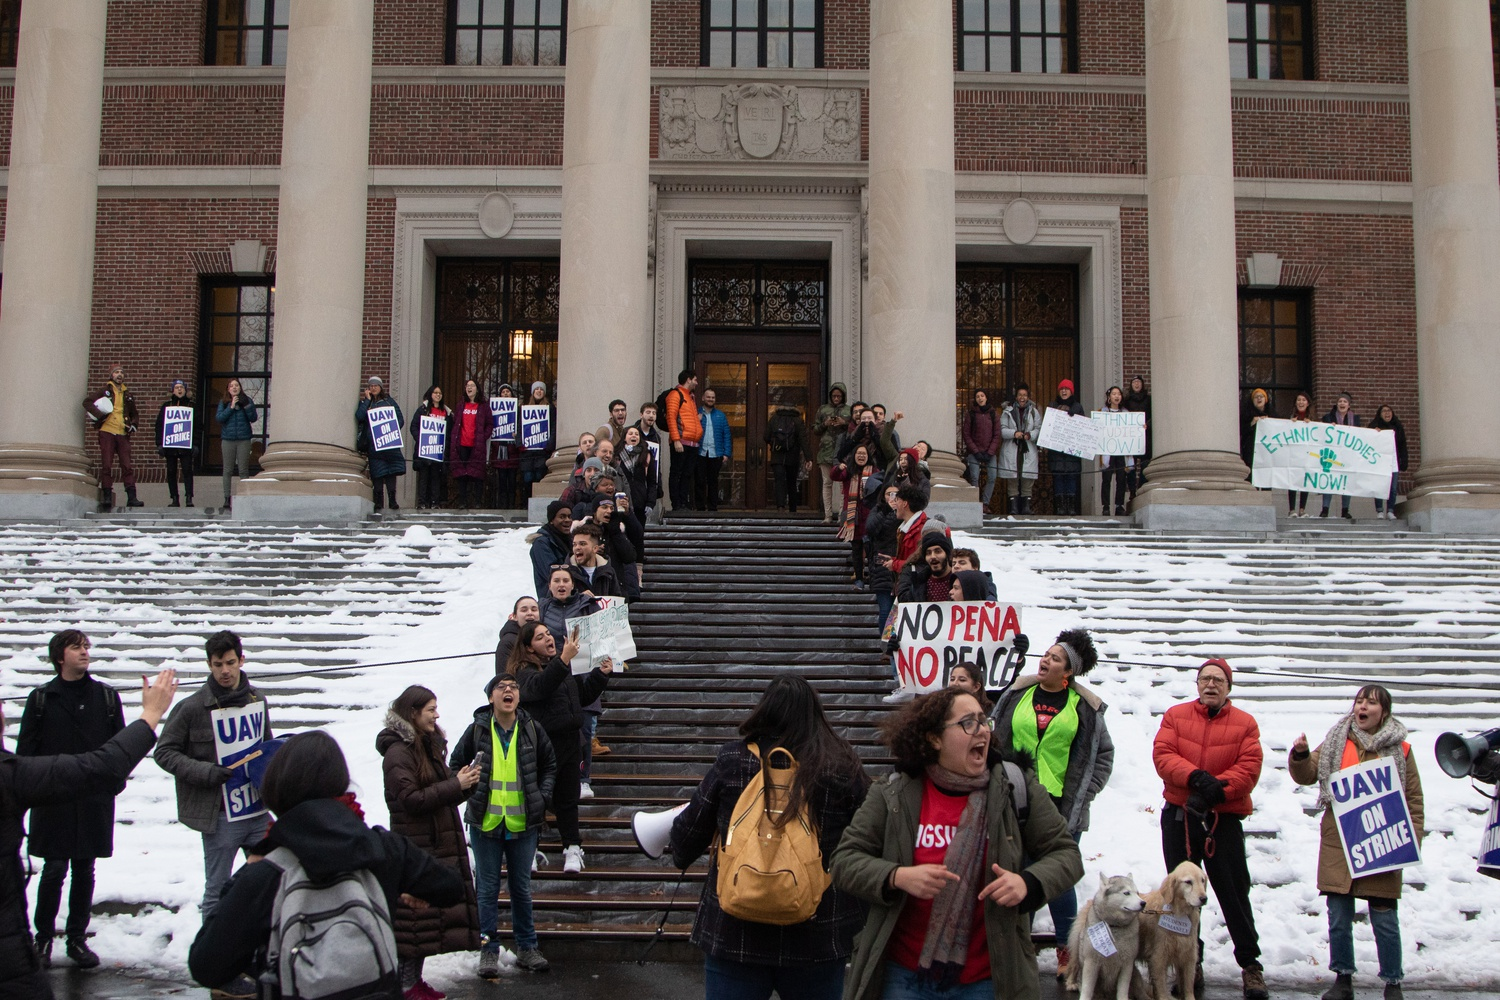 Last week, students protested in front of Widener Library calling on Harvard to increase the number of Ethnic Studies faculty and to formalize the academic program.